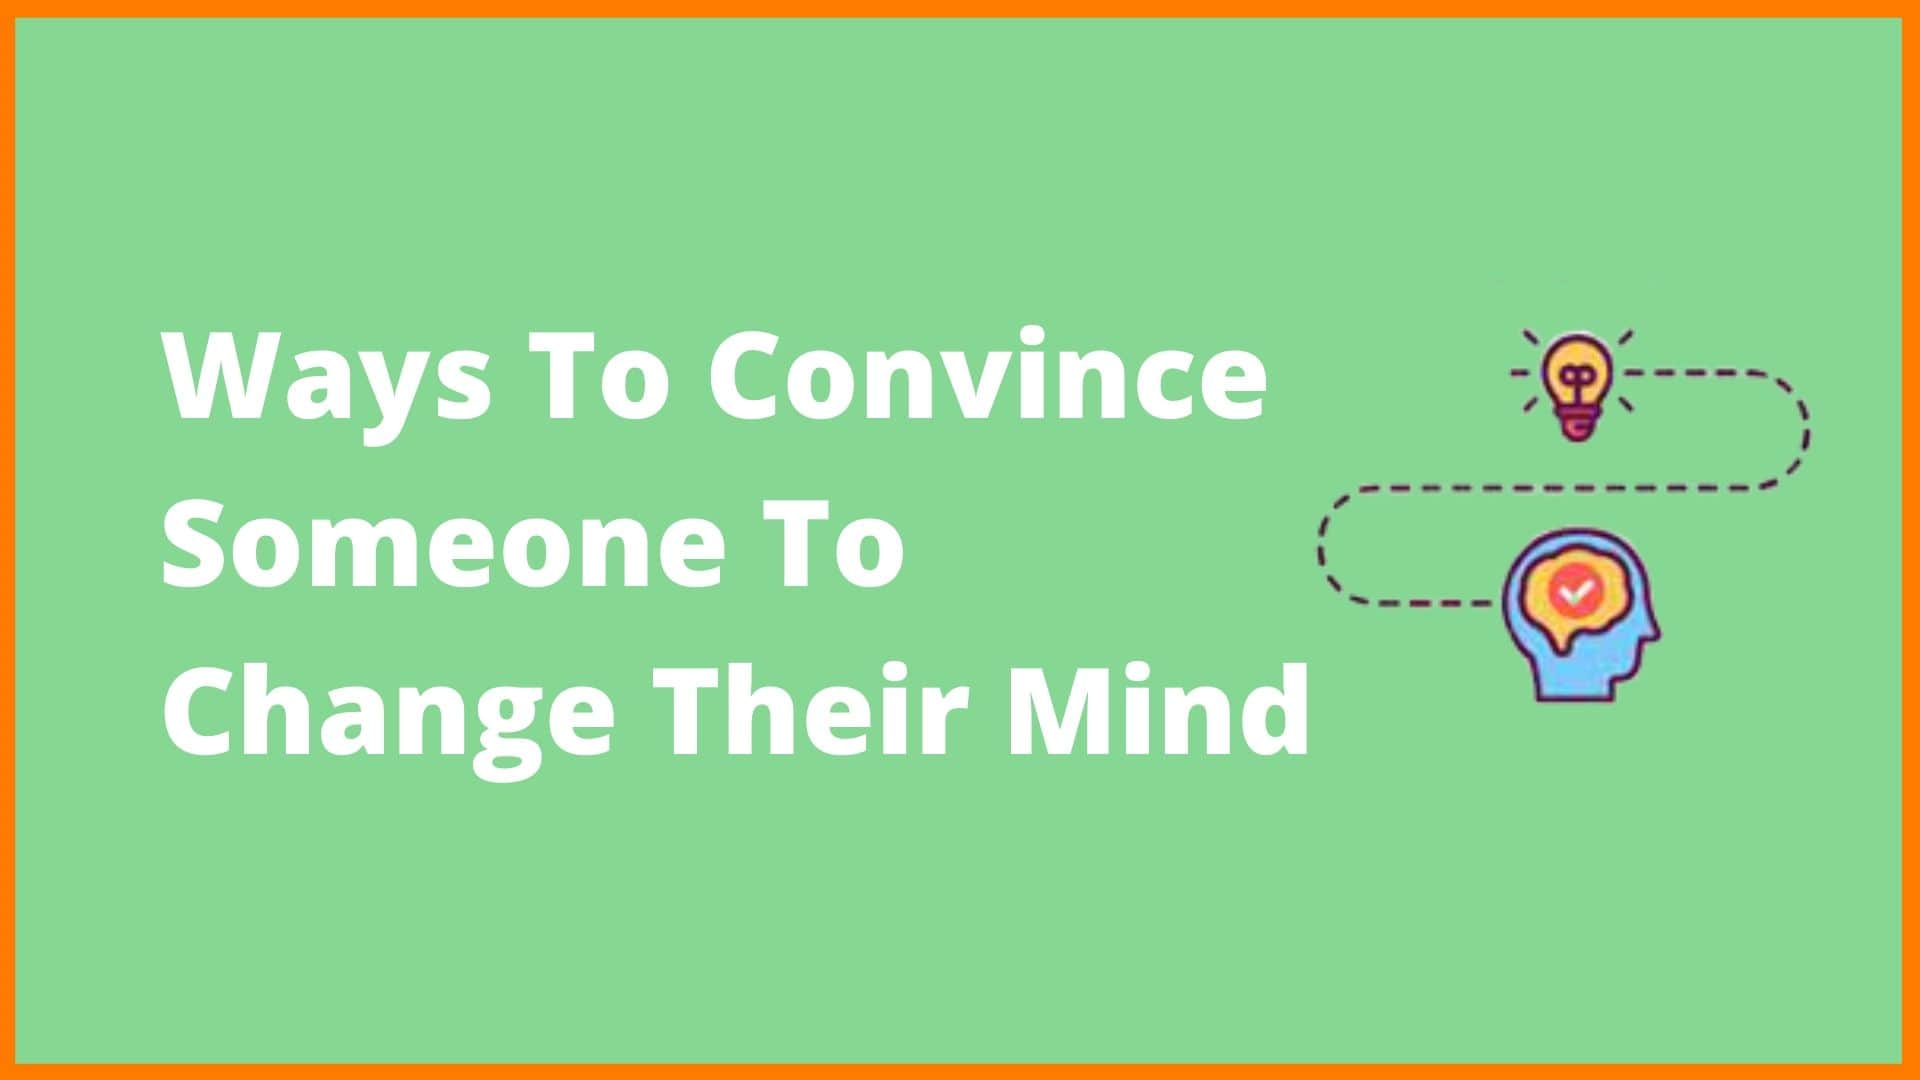 10 Ways To Convince Someone to Change Their Mind